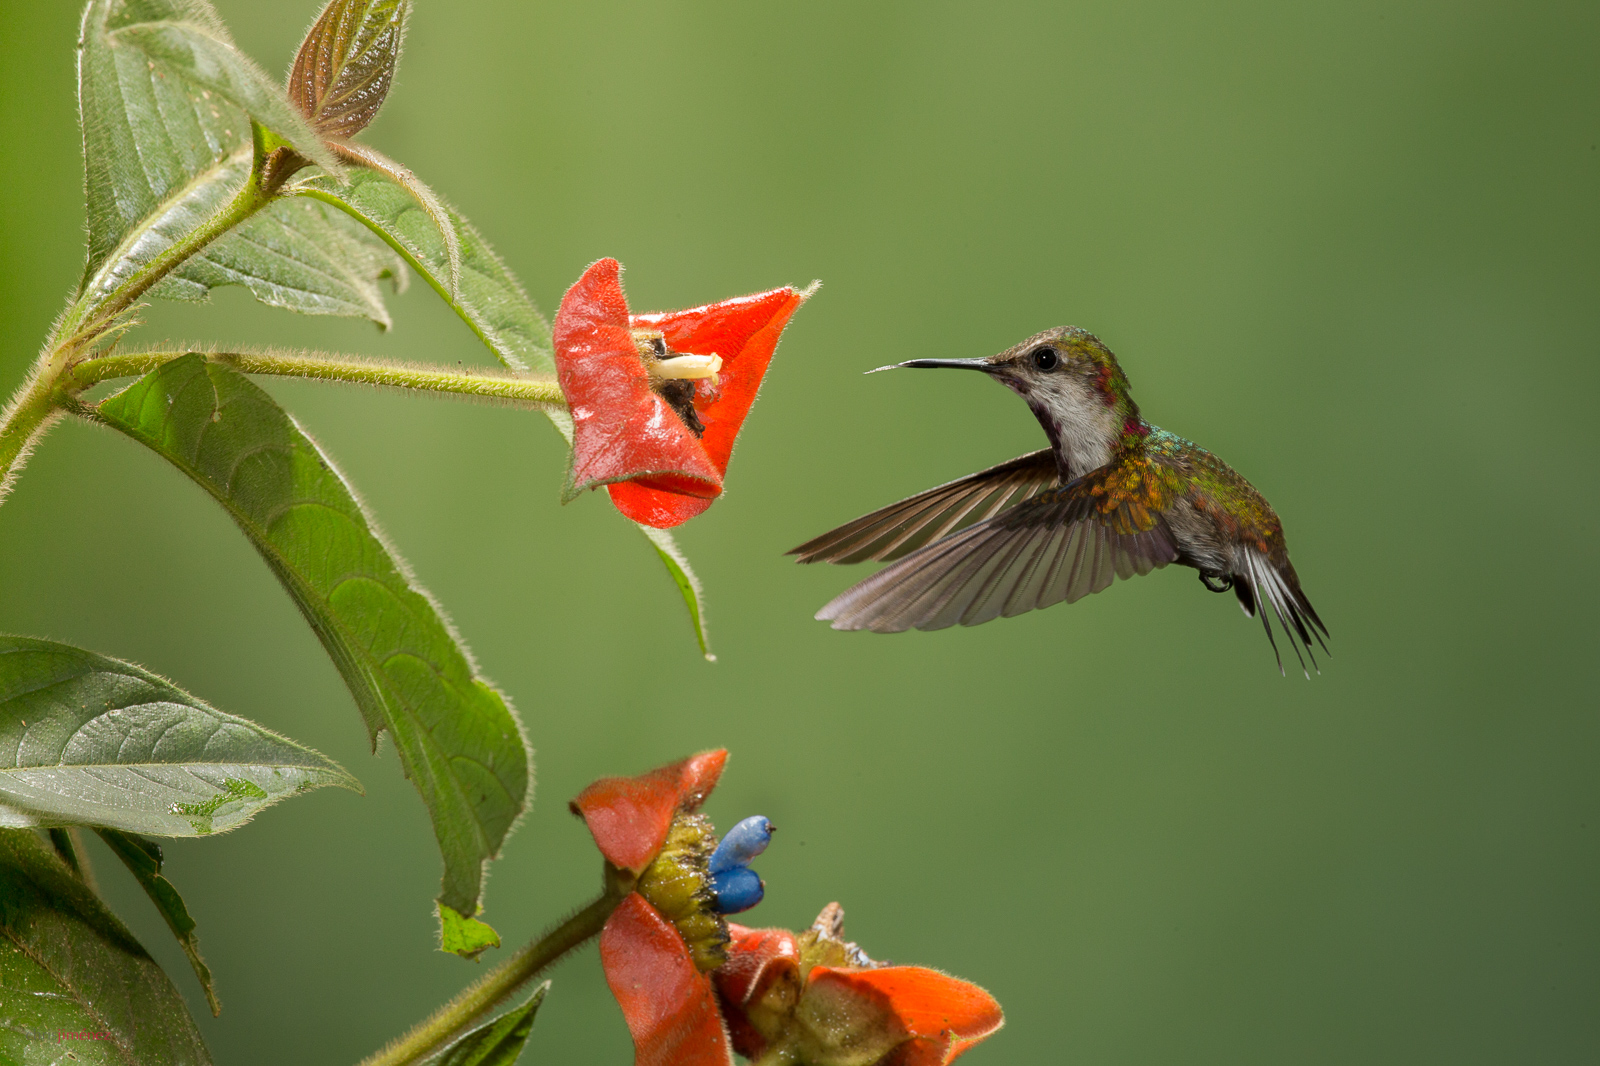 Snowcap (Microchera albocoronata) juvenile feeding from flowers in flight at the low lands of Costa Rica